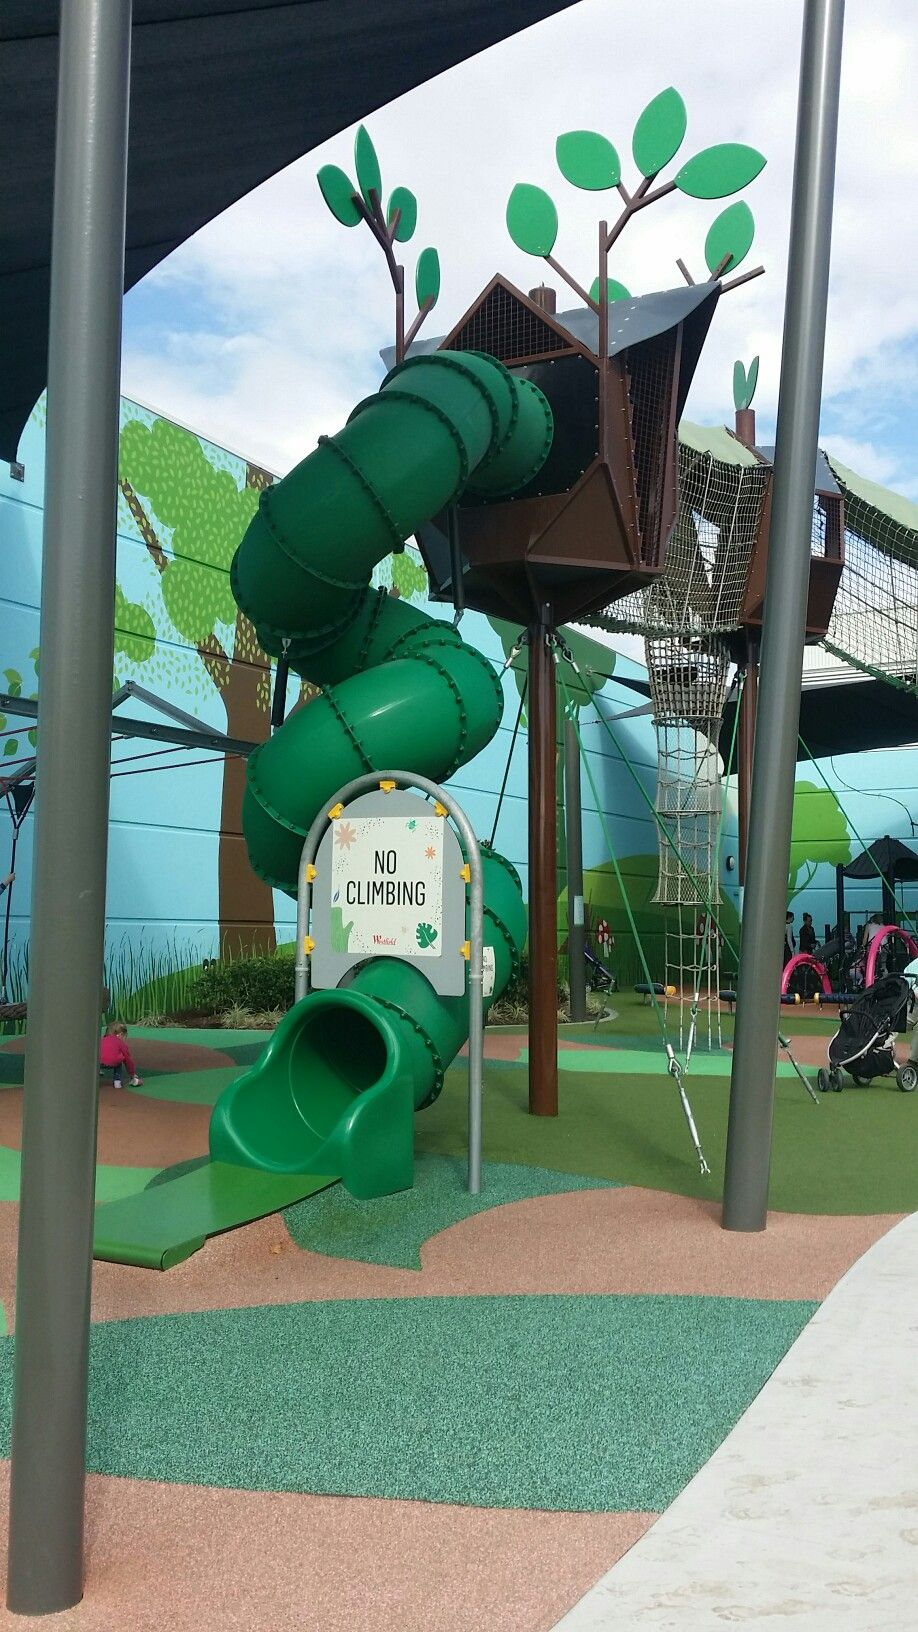 Baby Shops Helensvale Monkey Around At Westfield Helensvale Playground 亲子互动空间